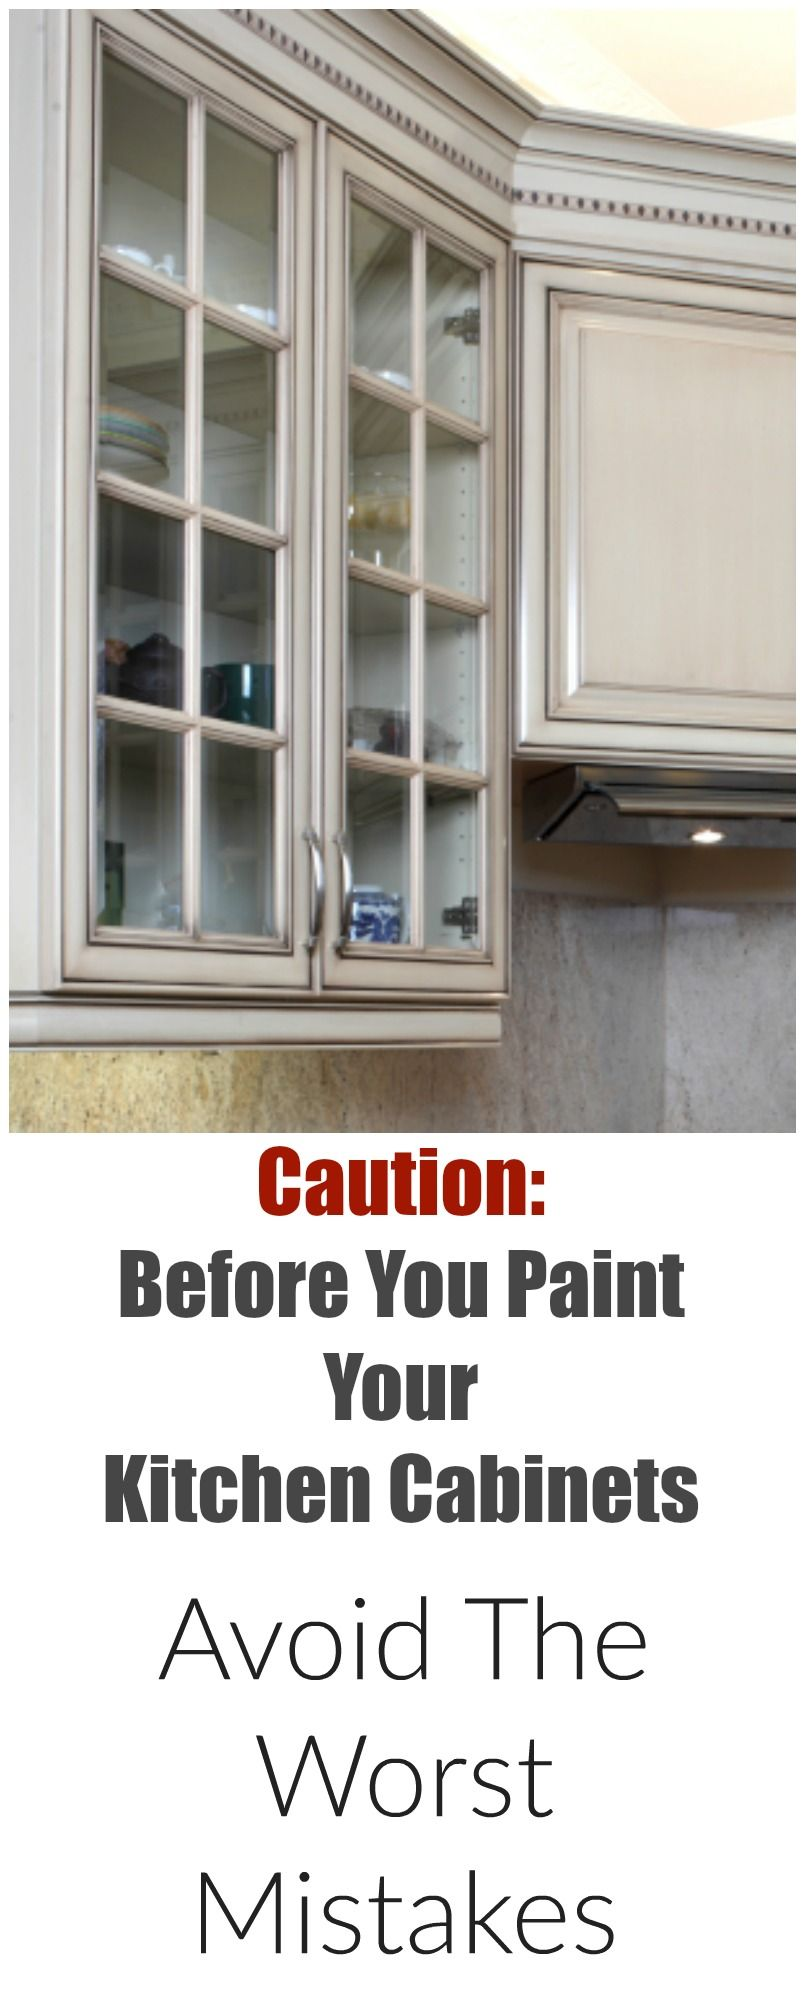 Ordinaire Mistakes People Make When Painting Kitchen Cabinets   Painted Furniture  Ideas